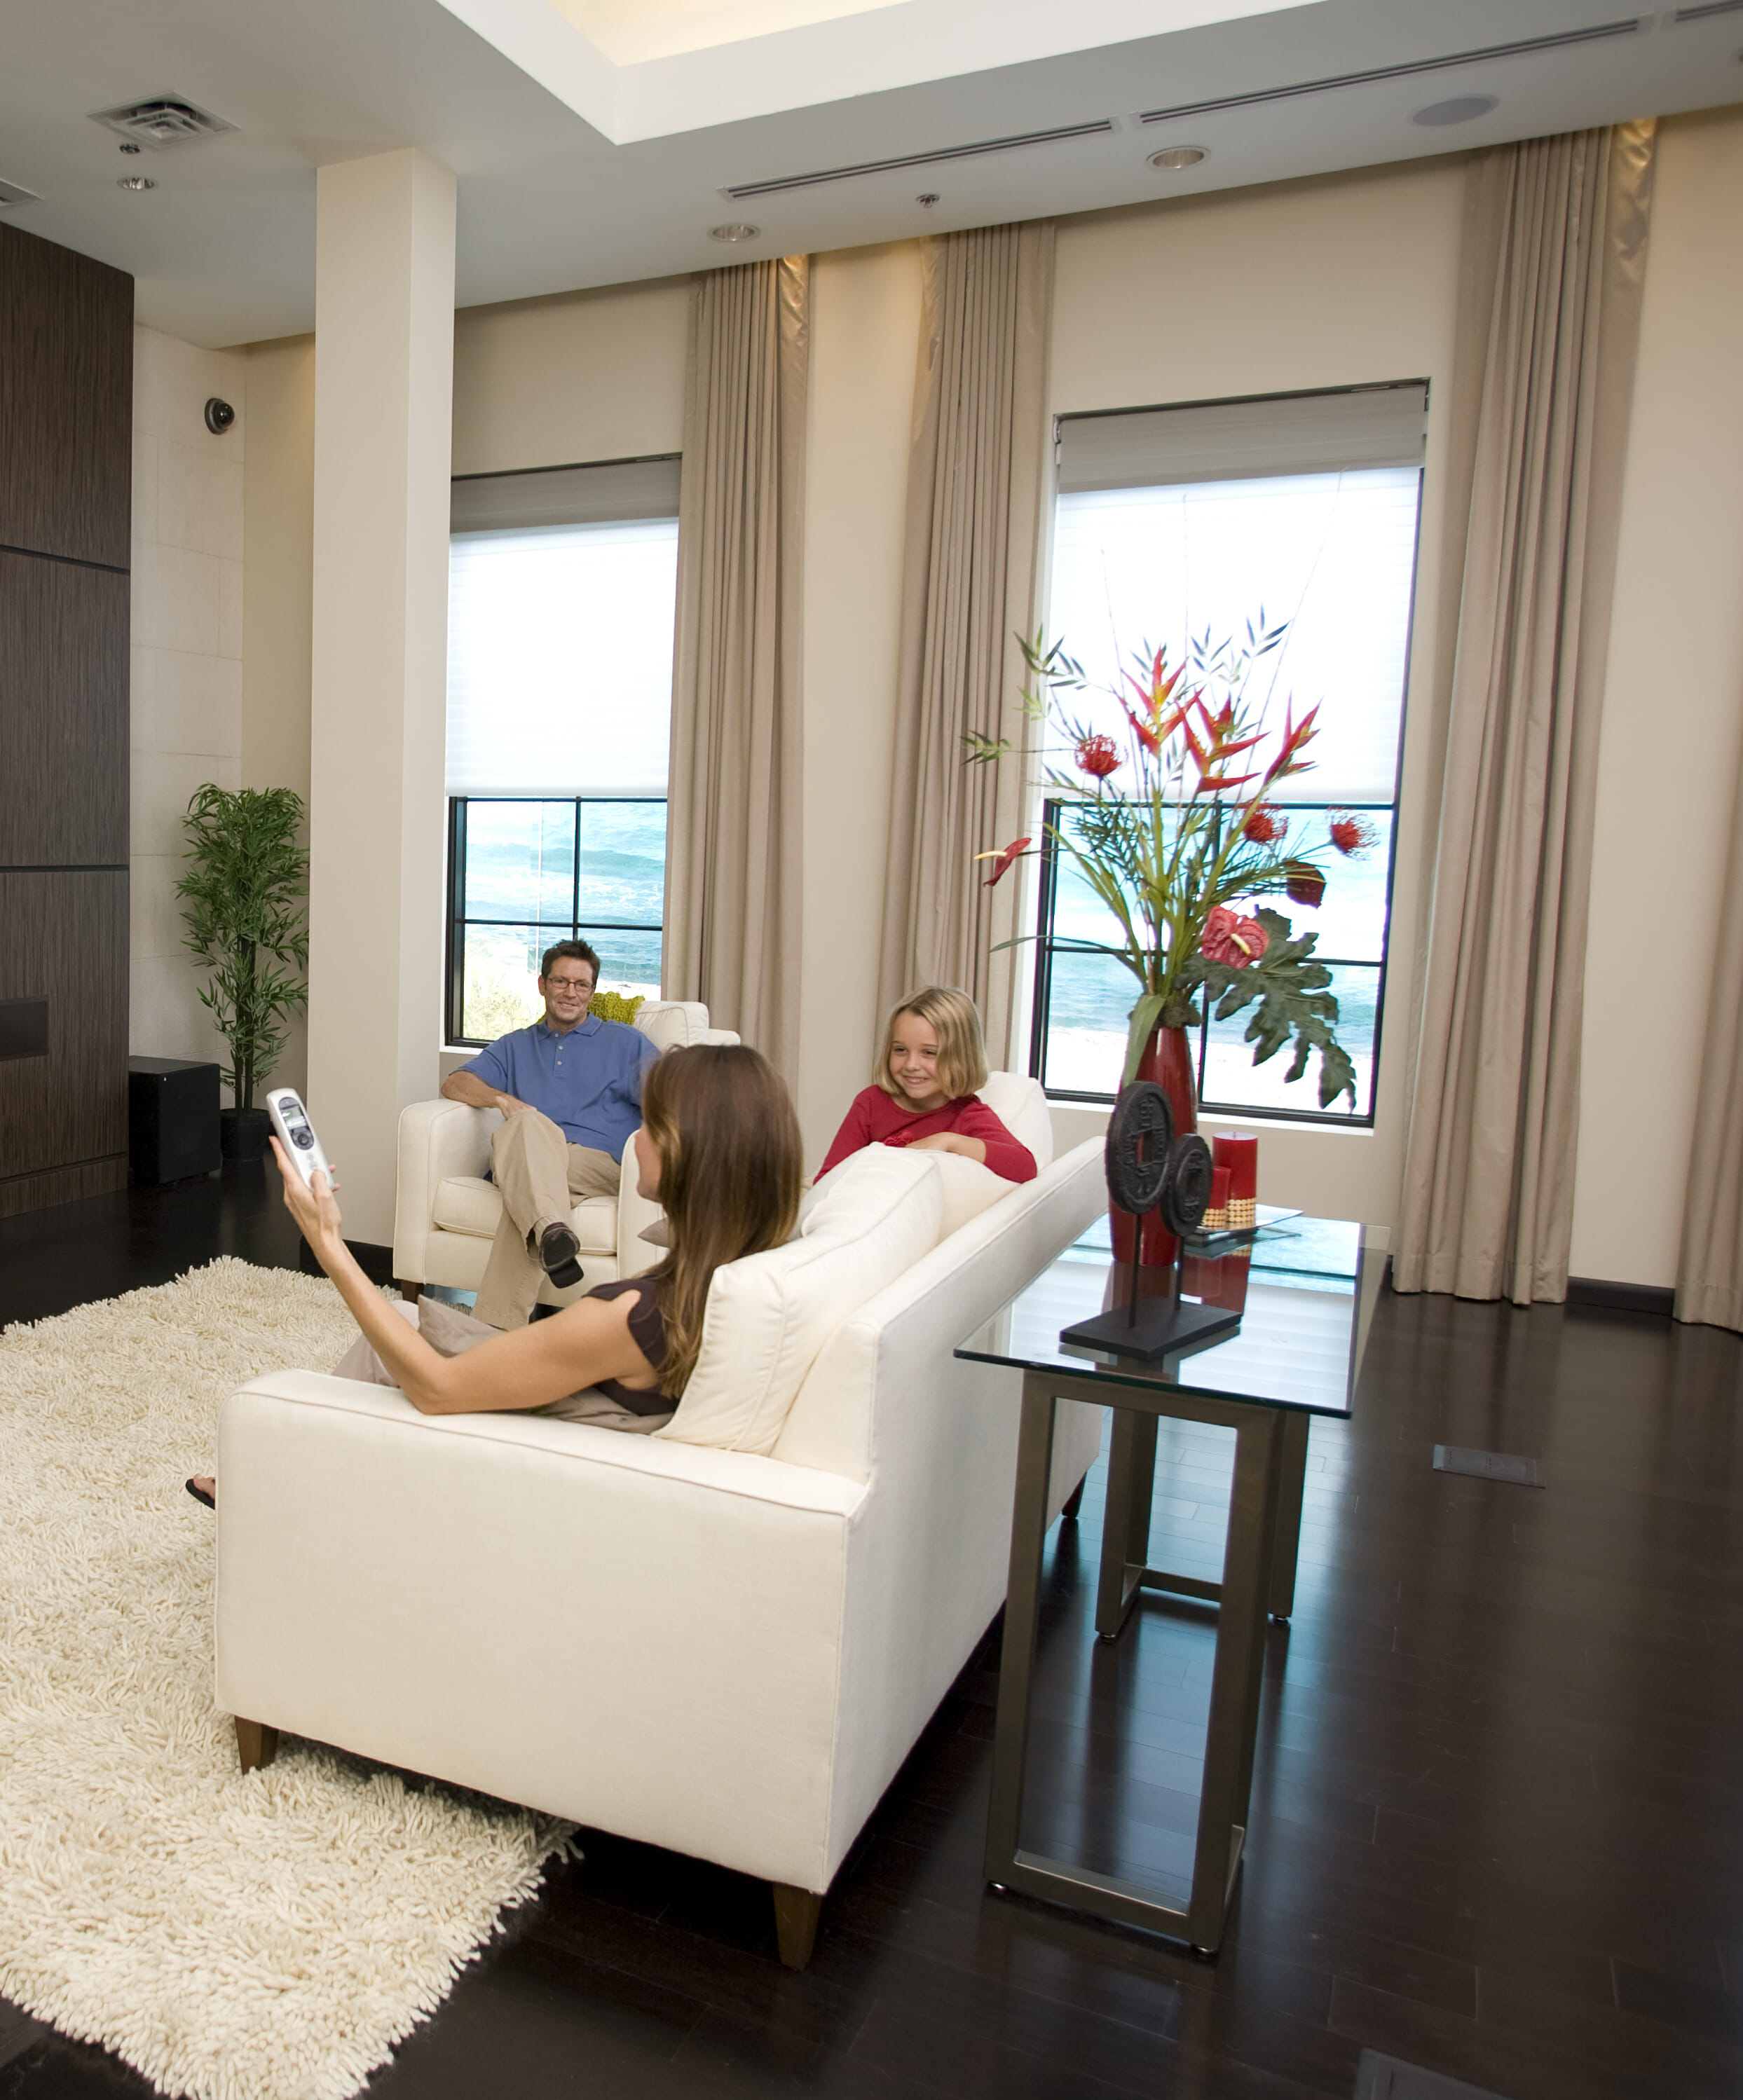 Somfy Automated Window Coverings 3 Blind Mice